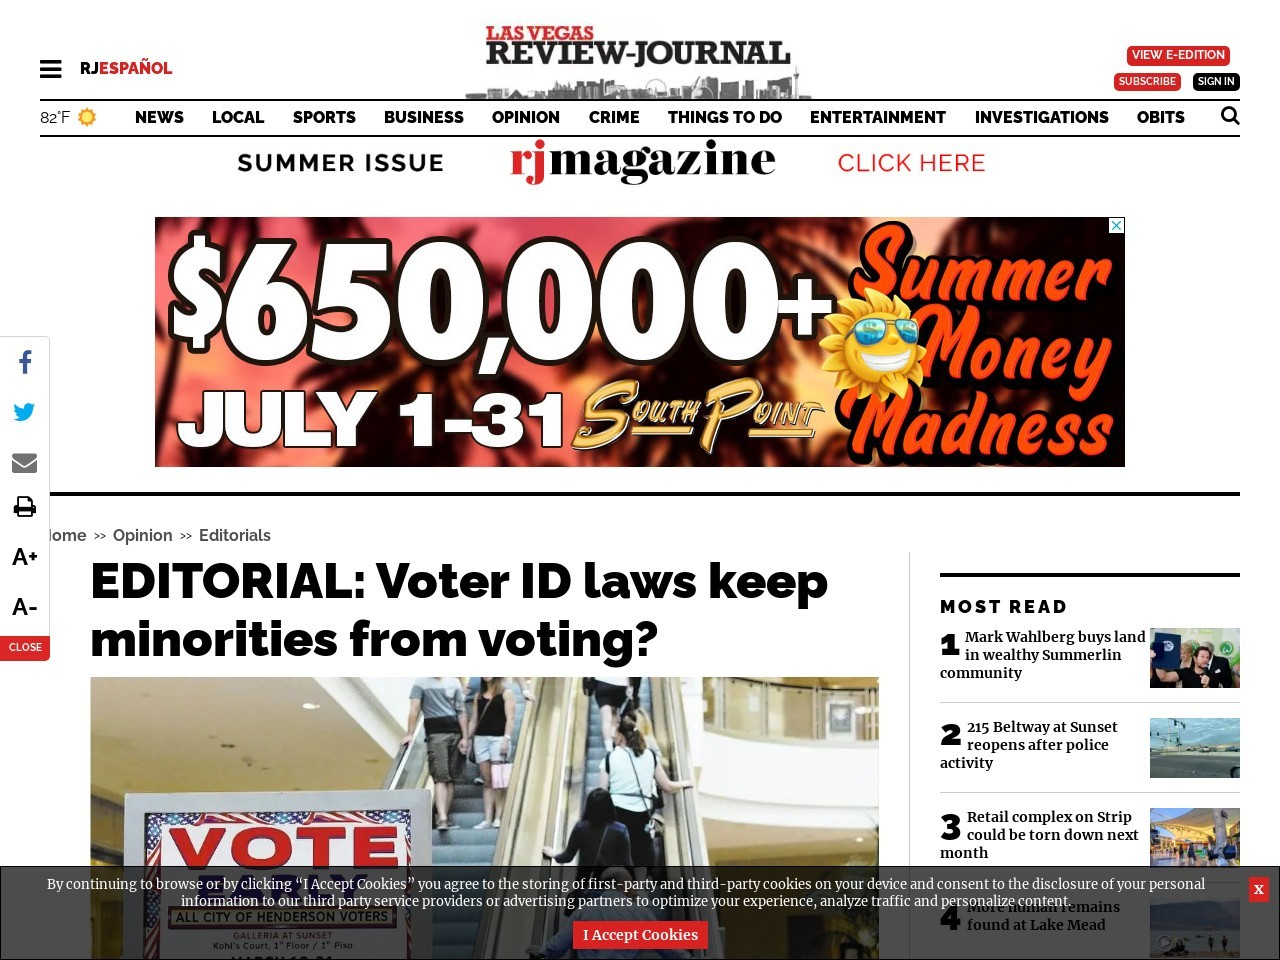 EDITORIAL: Voter ID laws keep minorities from voting?